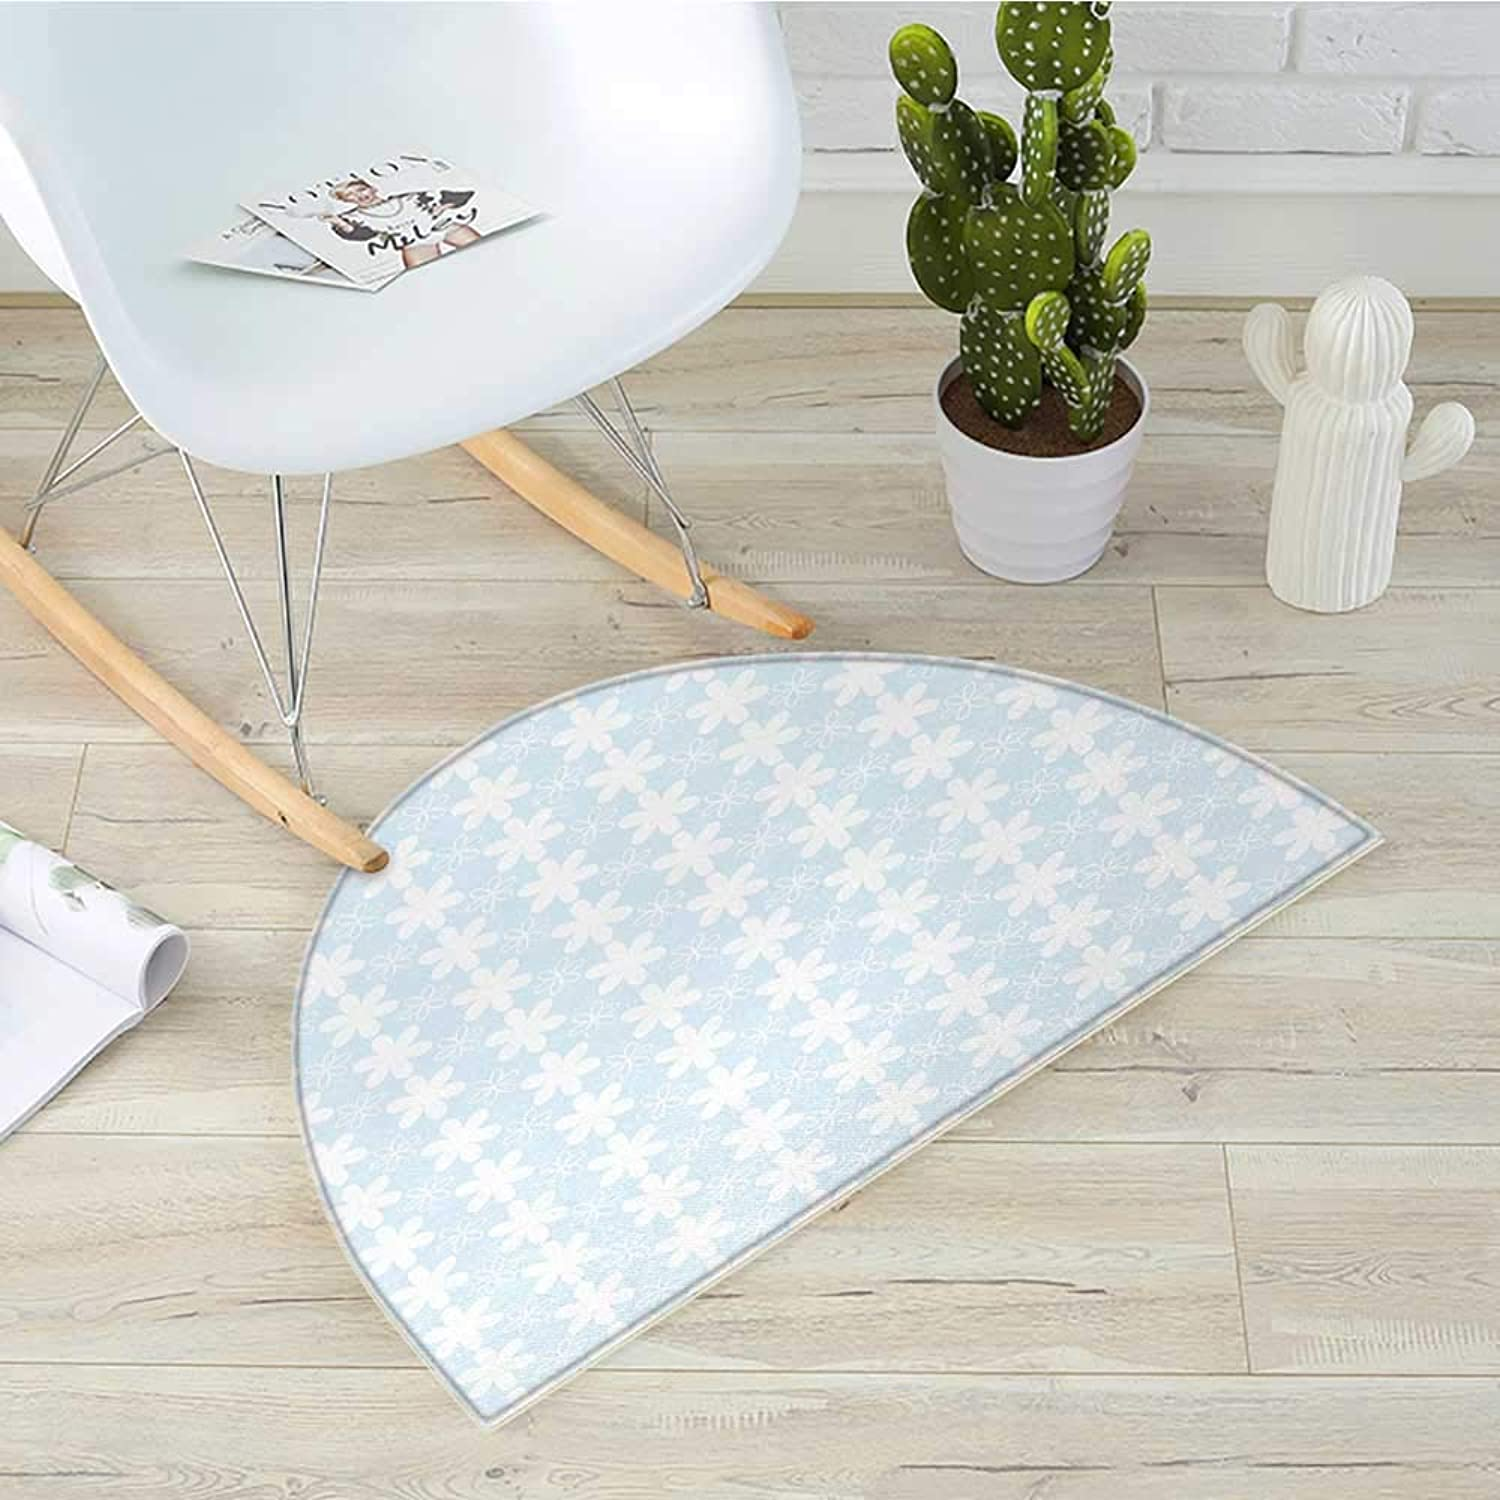 Floral Semicircular CushionGeometric Design greenical Flowers Pattern on Baby bluee Background Artwork Entry Door Mat H 39.3  xD 59  Baby bluee and White